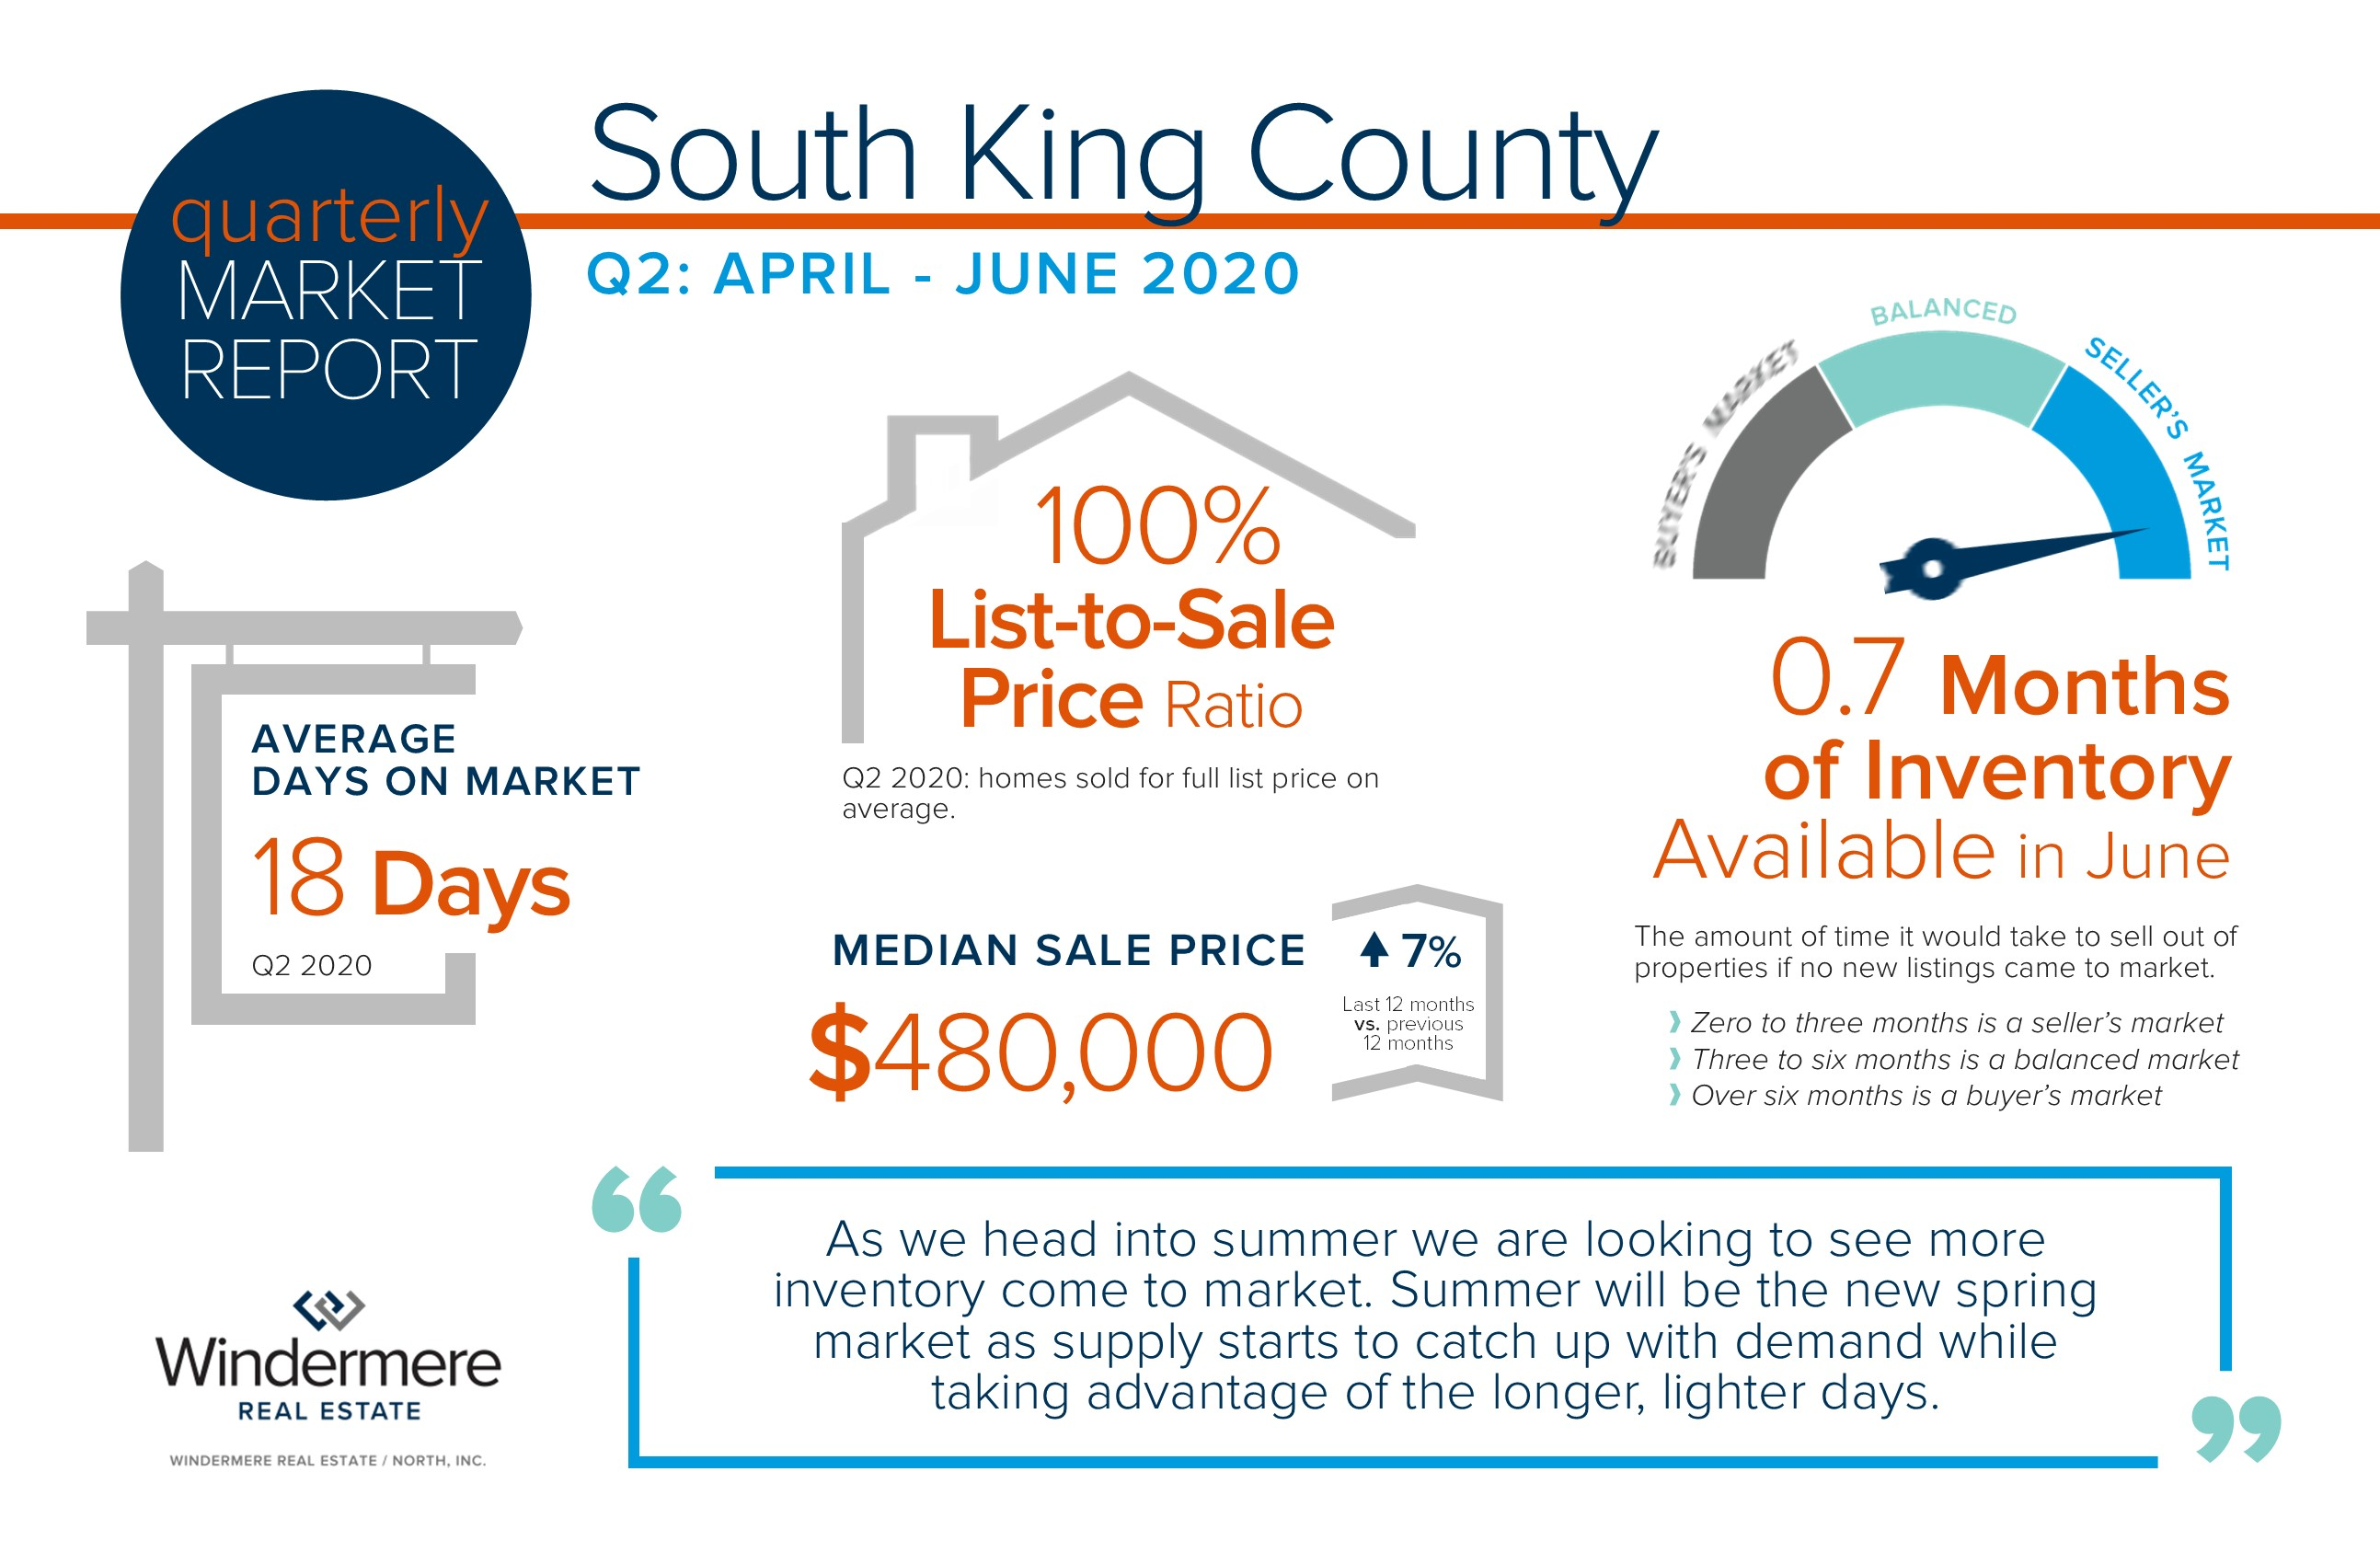 Quarterly Market Report for South King County